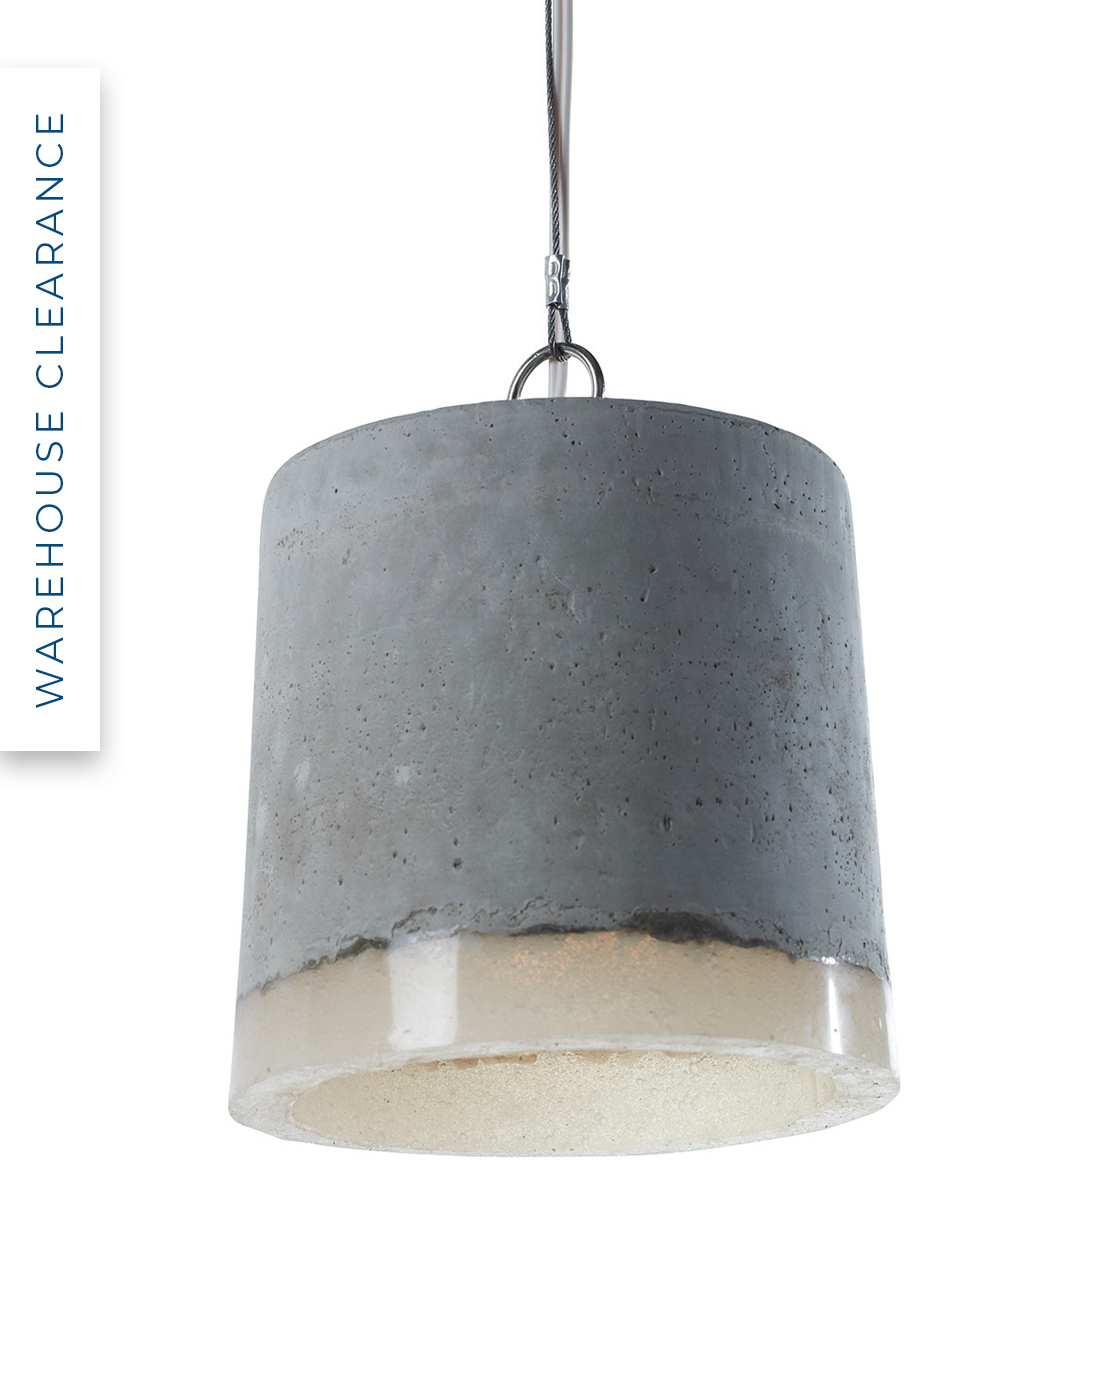 Beton pendant by Serax with 40% off